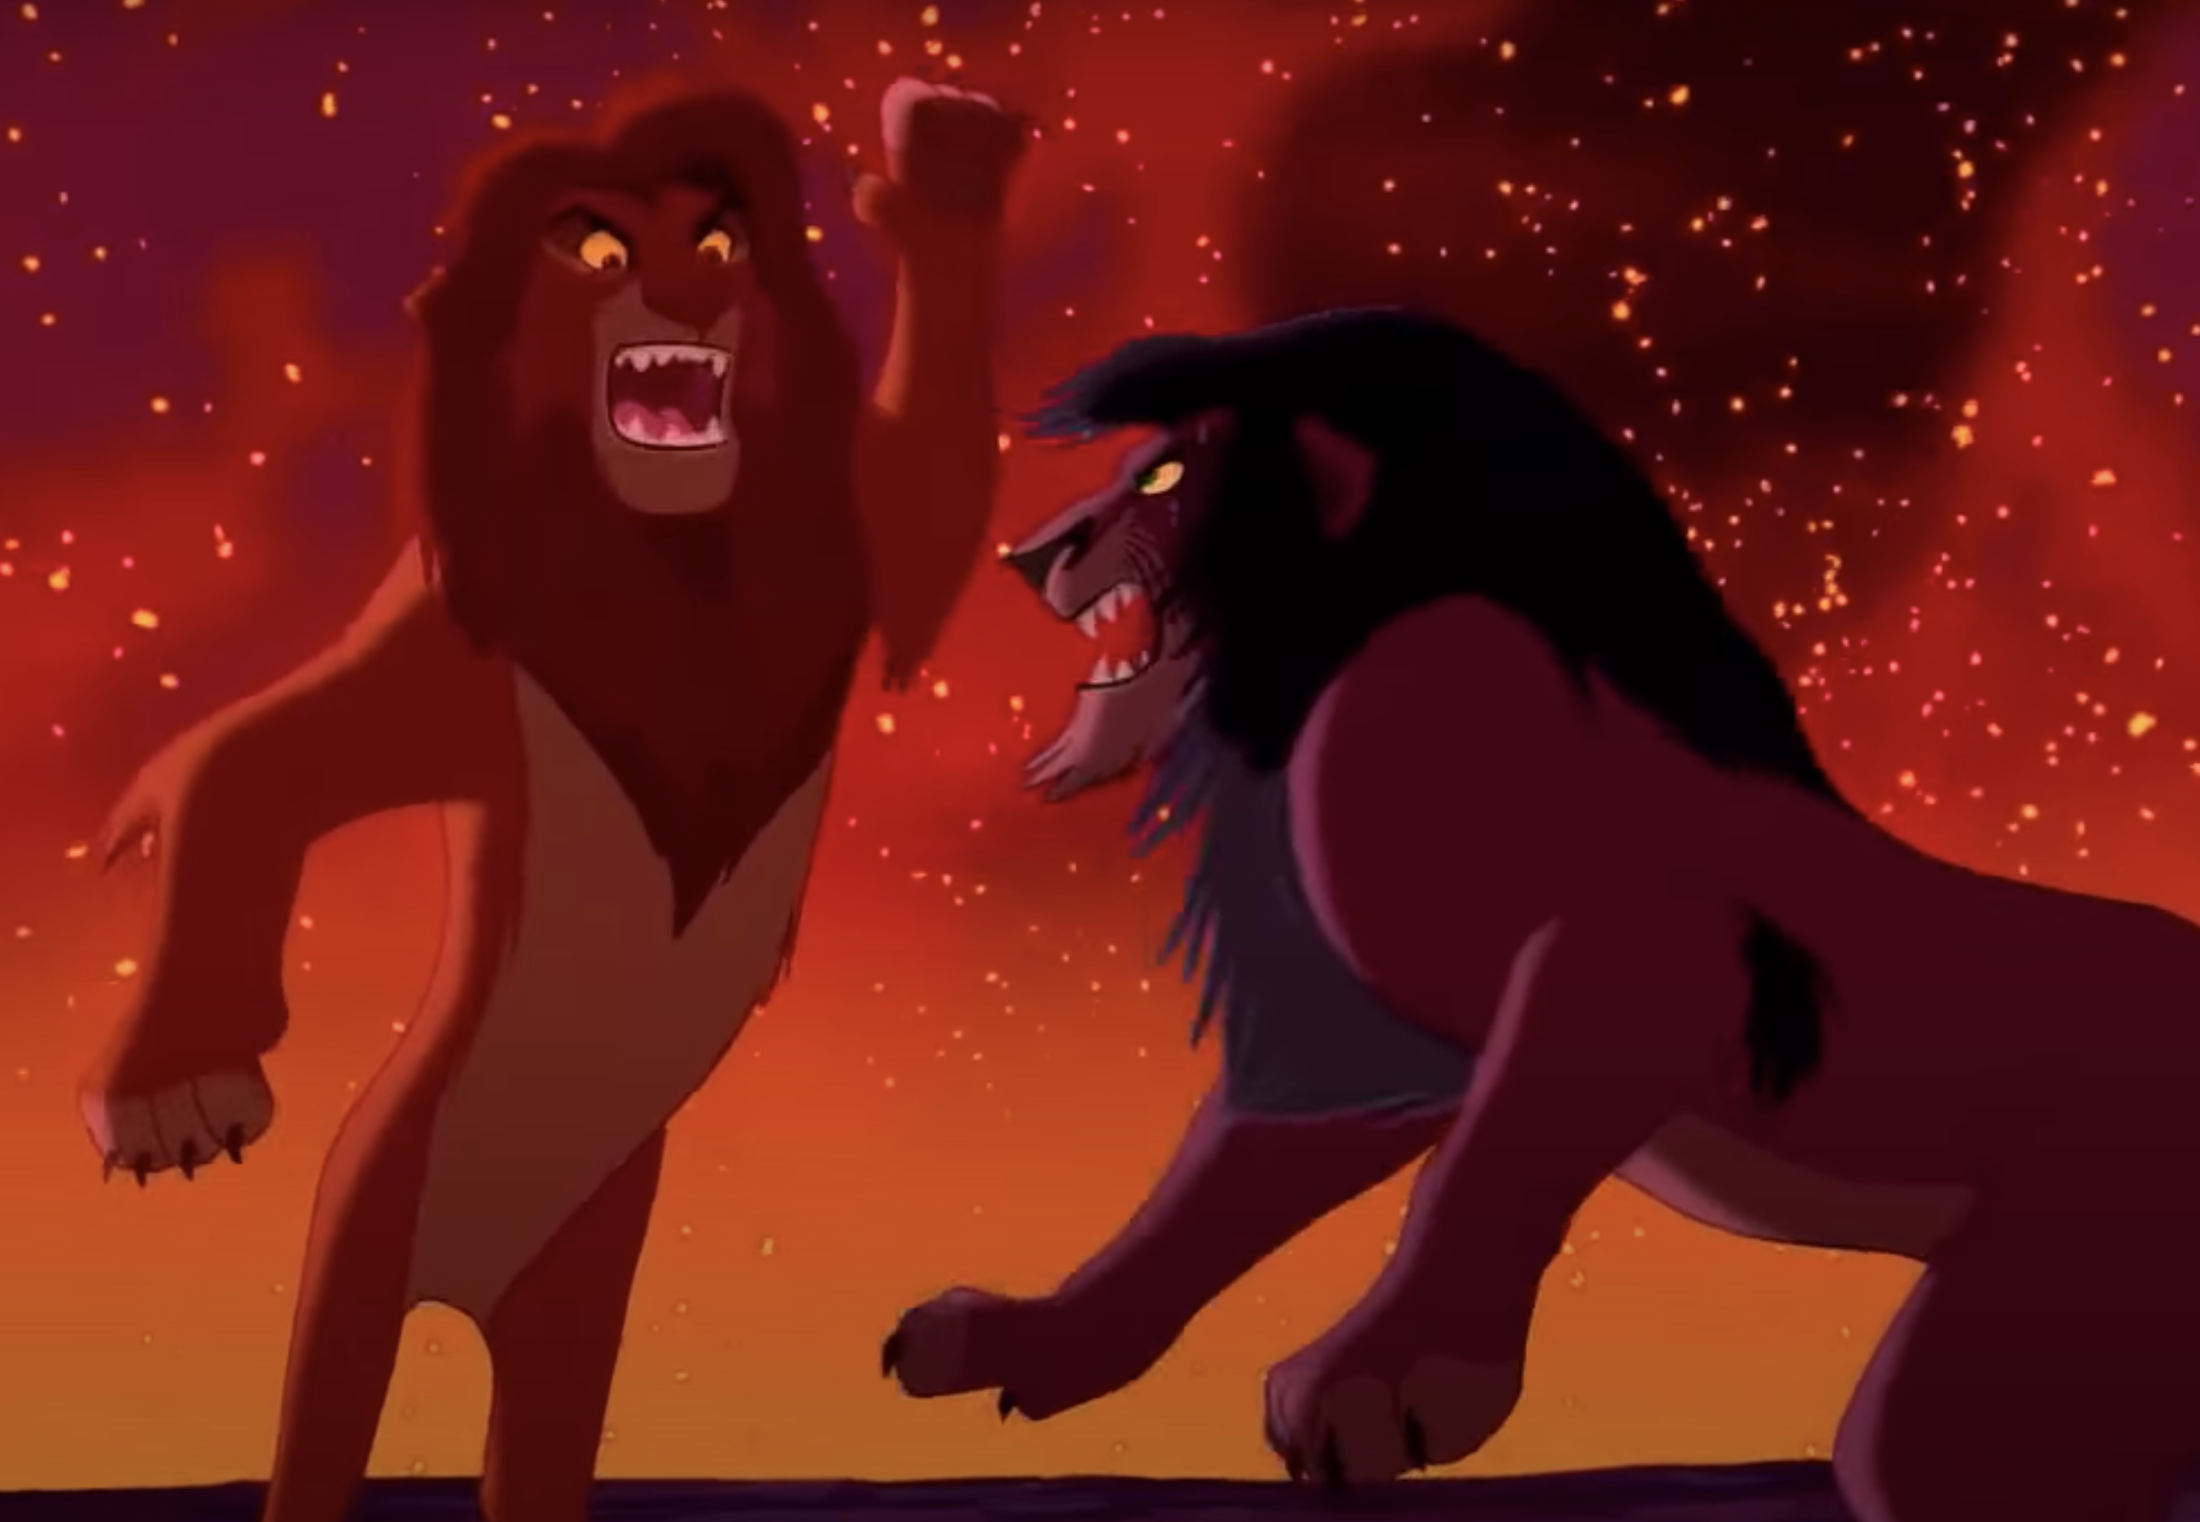 Simba leaps and attacks Scar as fire burns around them